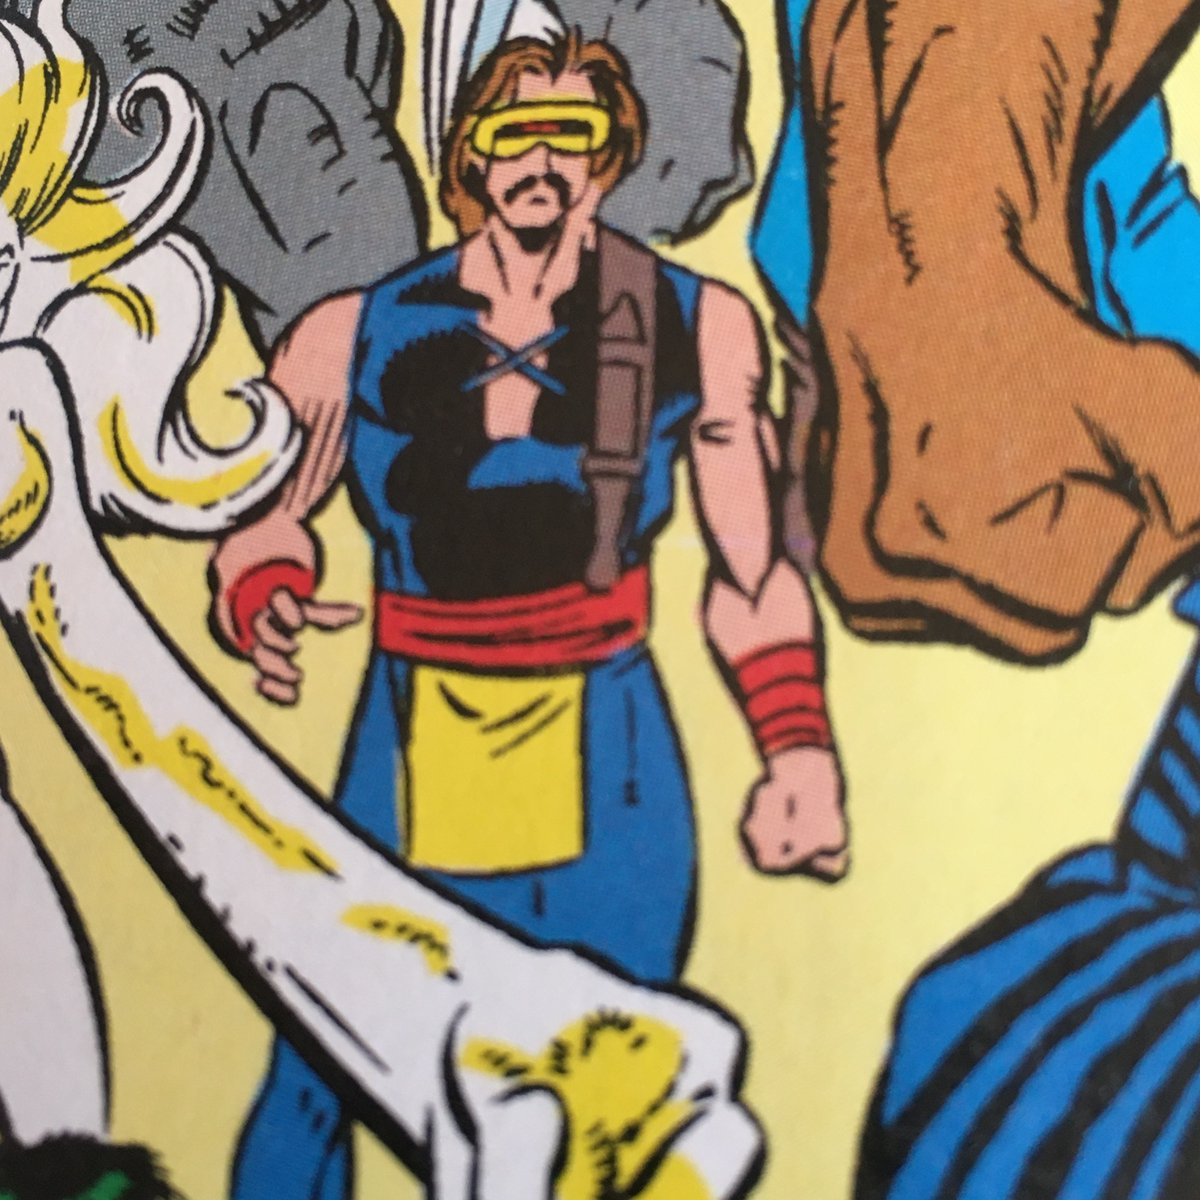 @XPlaintheXmen reading old New Warriors and thought you'd want to see this interesting alternate world version of cyclops <br>http://pic.twitter.com/BfrXKC5pMK